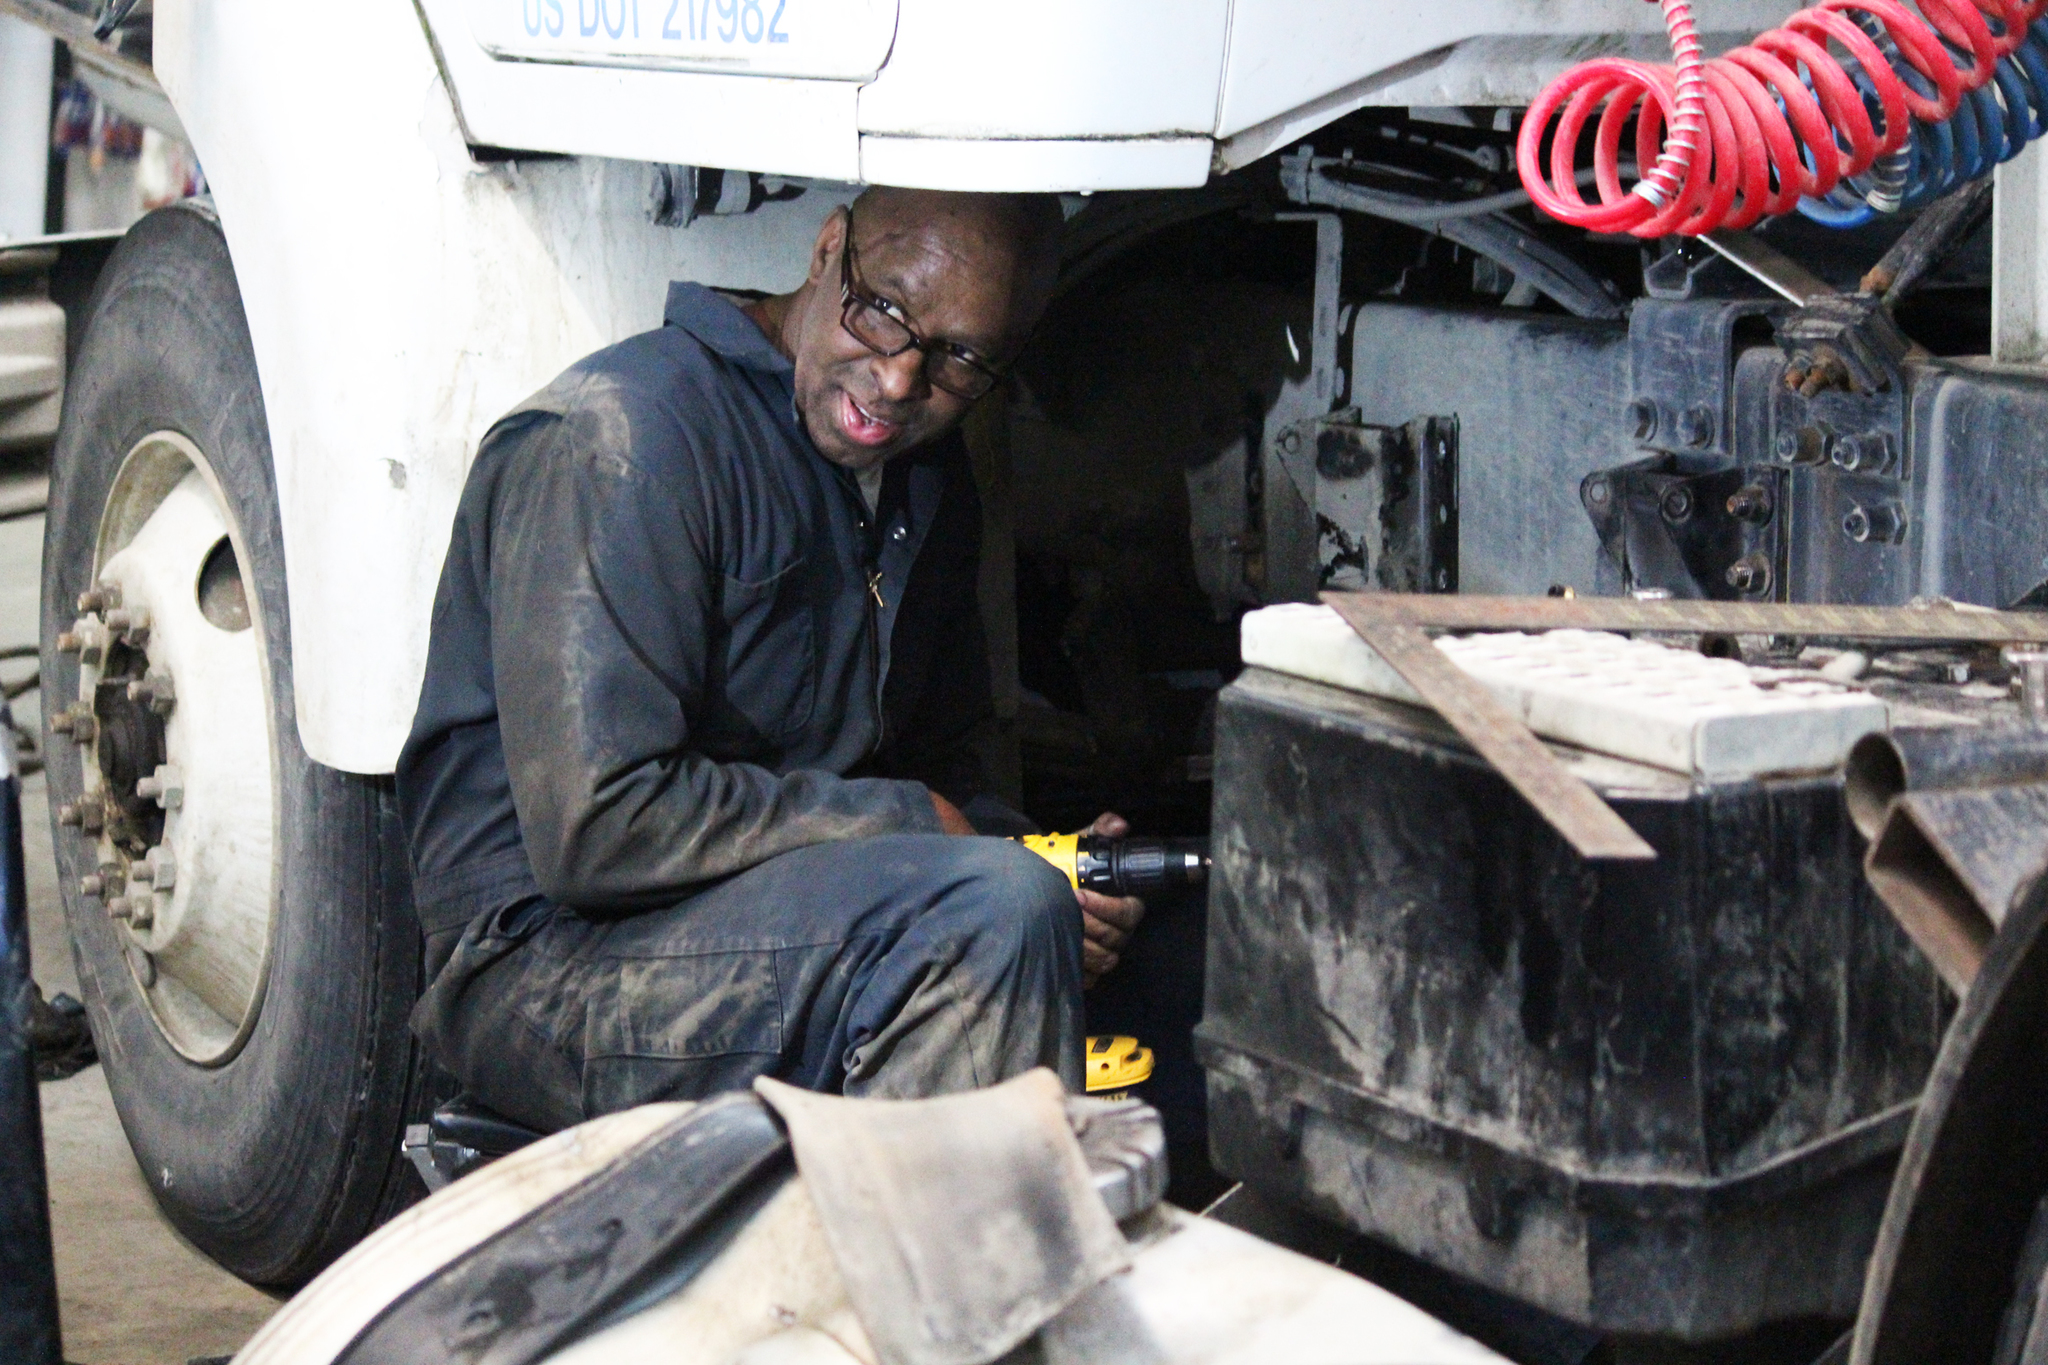 Thaddeus Lewis turns to his boss, Lee Berzanske, while drilling holes in an Enstar Natural Gas Co. truck during their work day Thursday, Feb. 16, 2017 at Lee's Heavy Equipment Repair on Kalifornsky Beach Road near Kenai, Alaska. Lewis, an inmate at Wildwood Correctional Complex, was the first offender admitted into the facility's new Vocational Work Release Program. (Megan Pacer/Peninsula Clarion)